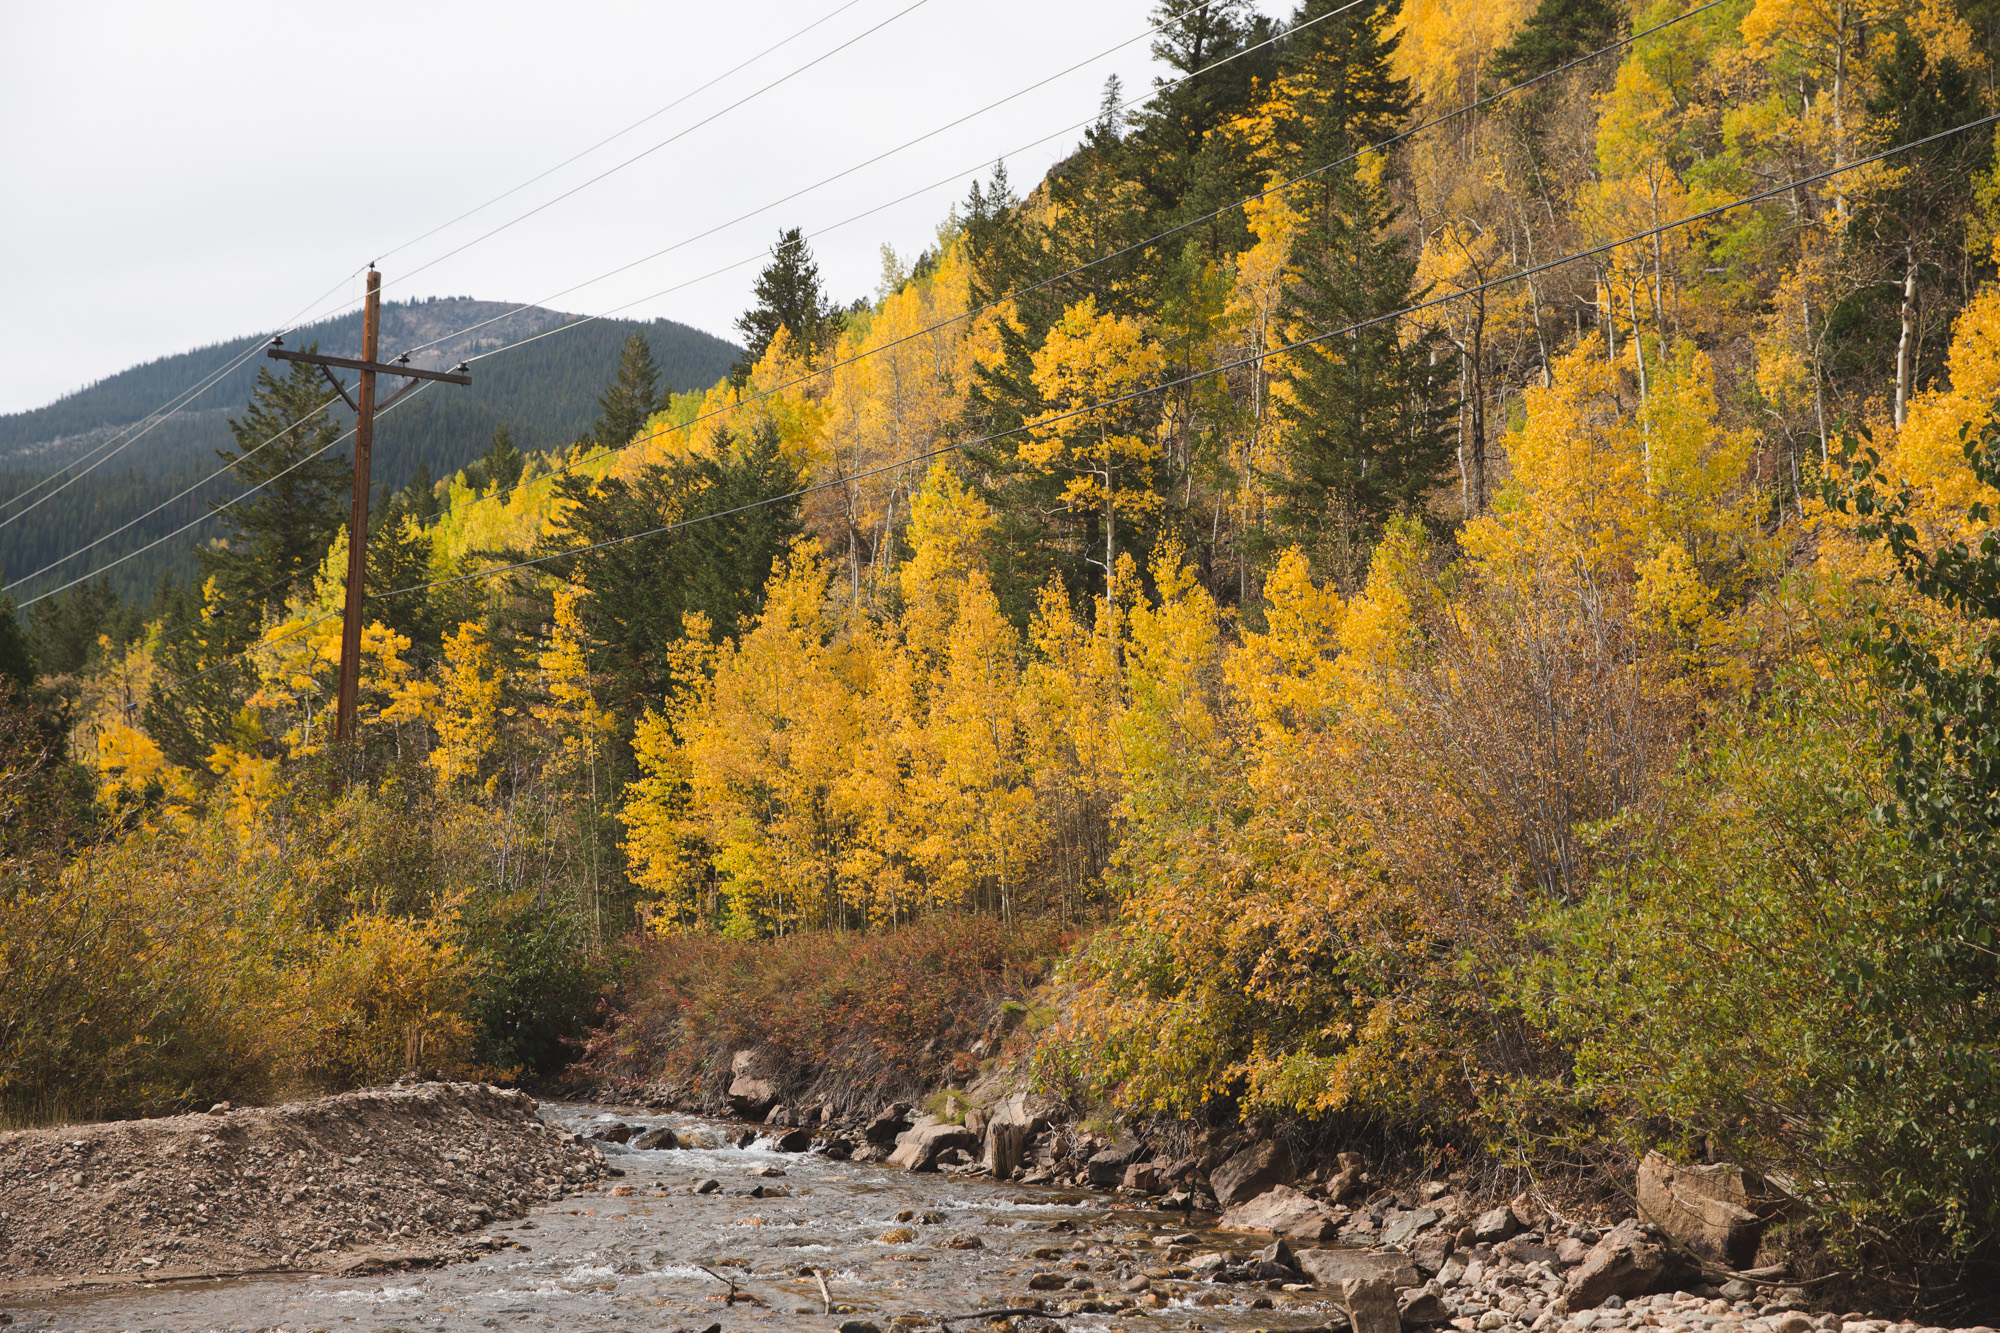 River on Guanella Pass in Colorado surrounded by yellow aspen trees, pine trees, and plants